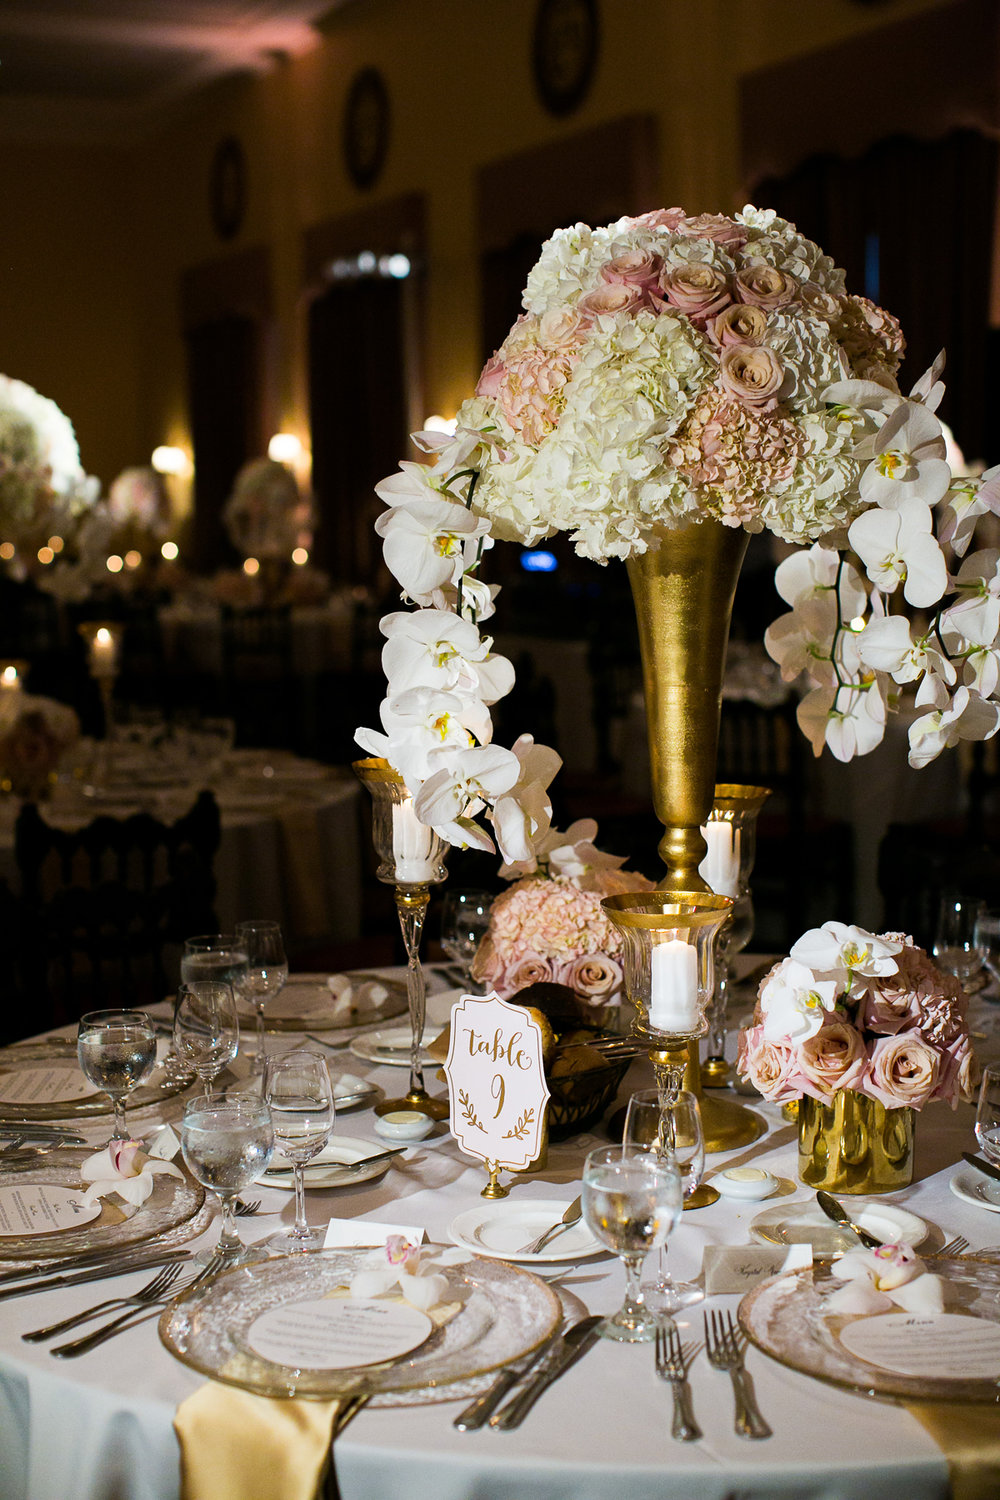 Dreamy Romantic Wedding at Historic Los Angeles Ebell Club floral centerpiece.jpg